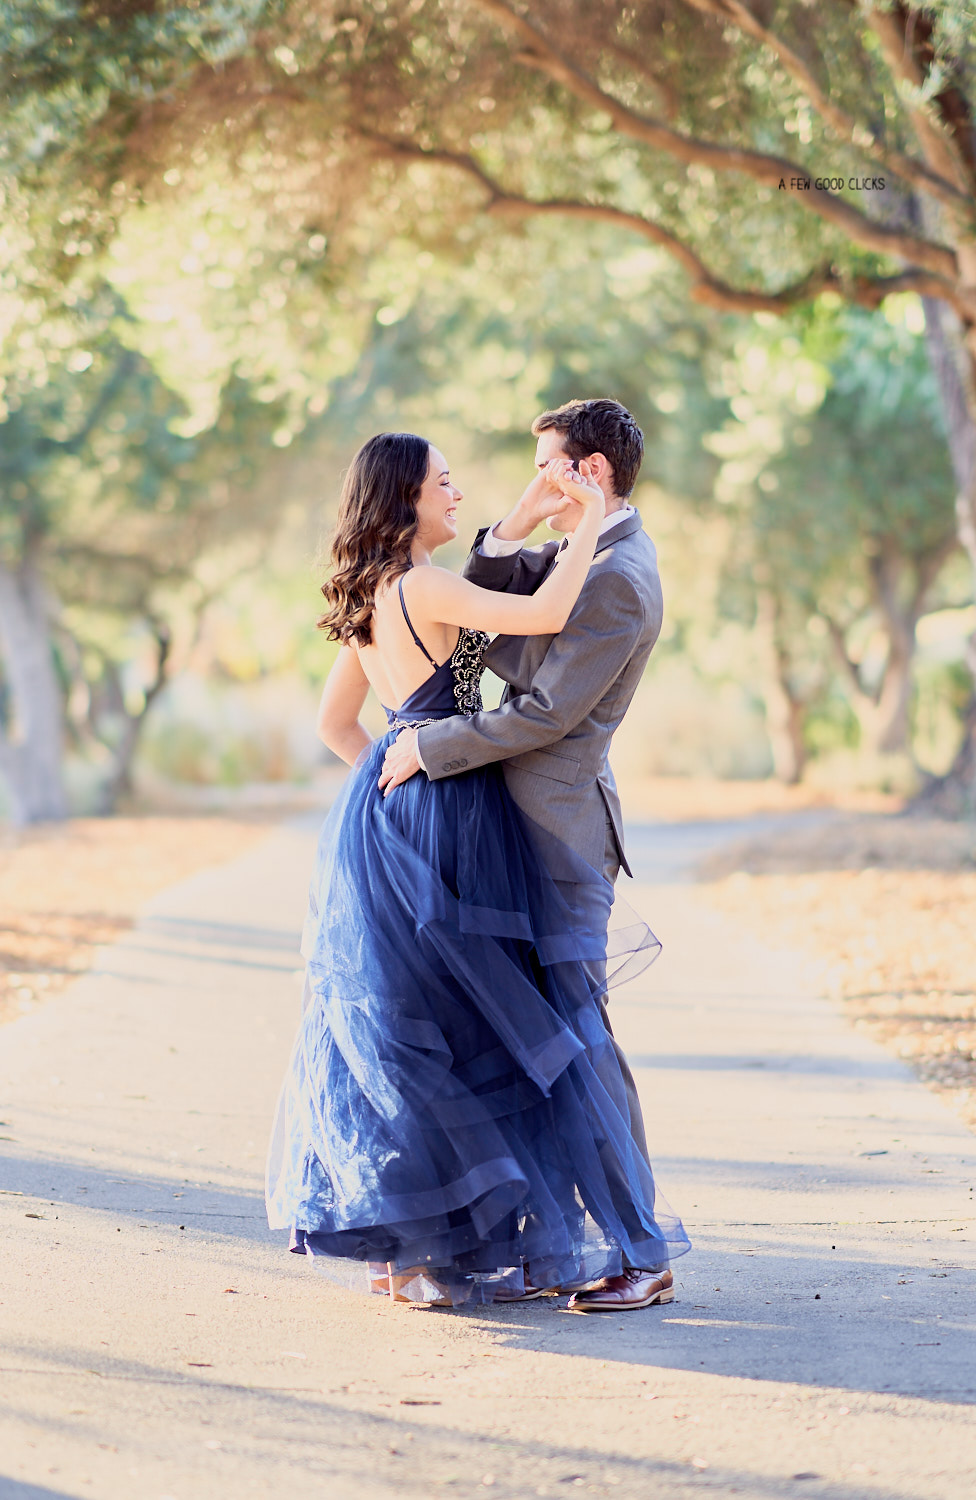 couples-photoshoot-san-jose-olive-grove-location-ideas